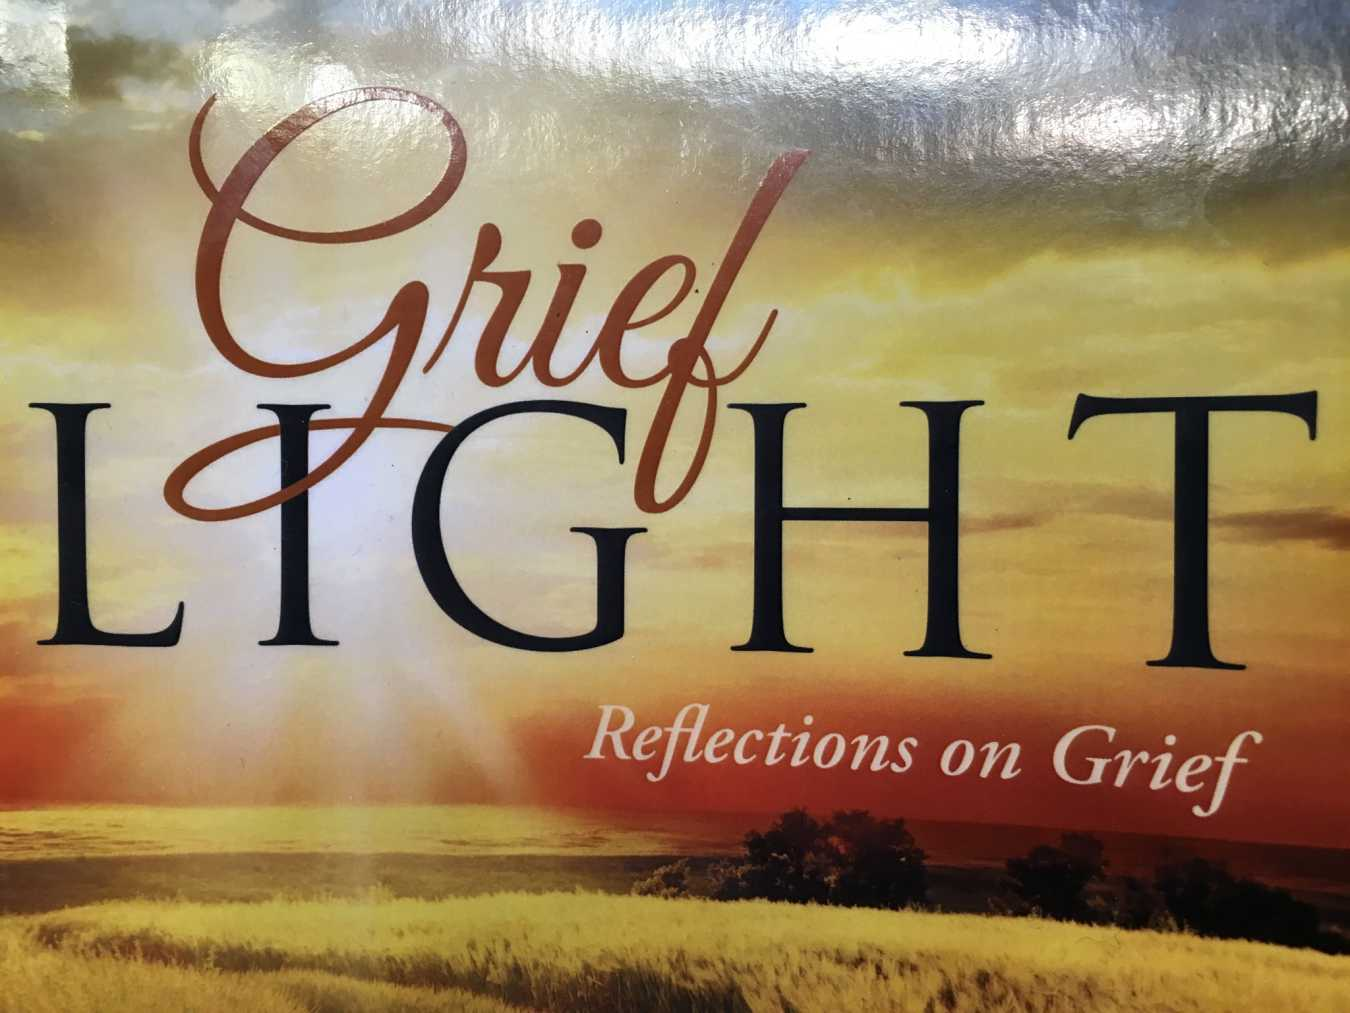 Grief Light by Julie Yarbrough – a review